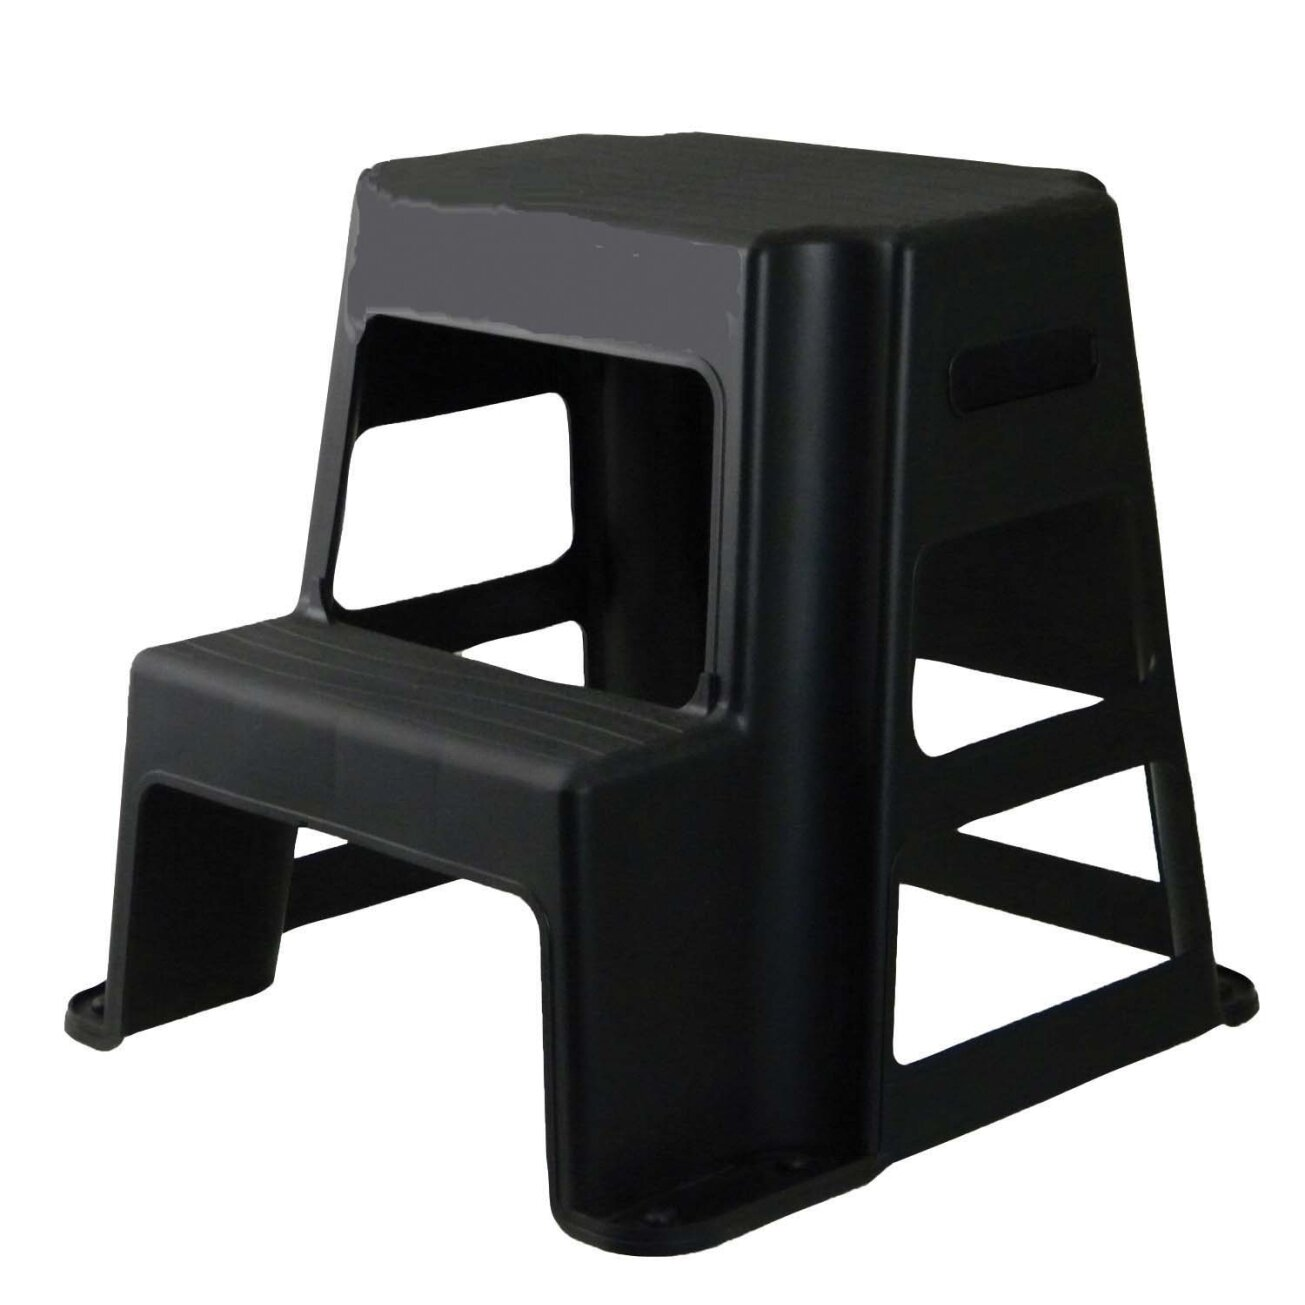 Lowes Step Stool | Three Step Step Stool | 3 Step Folding Step Stool